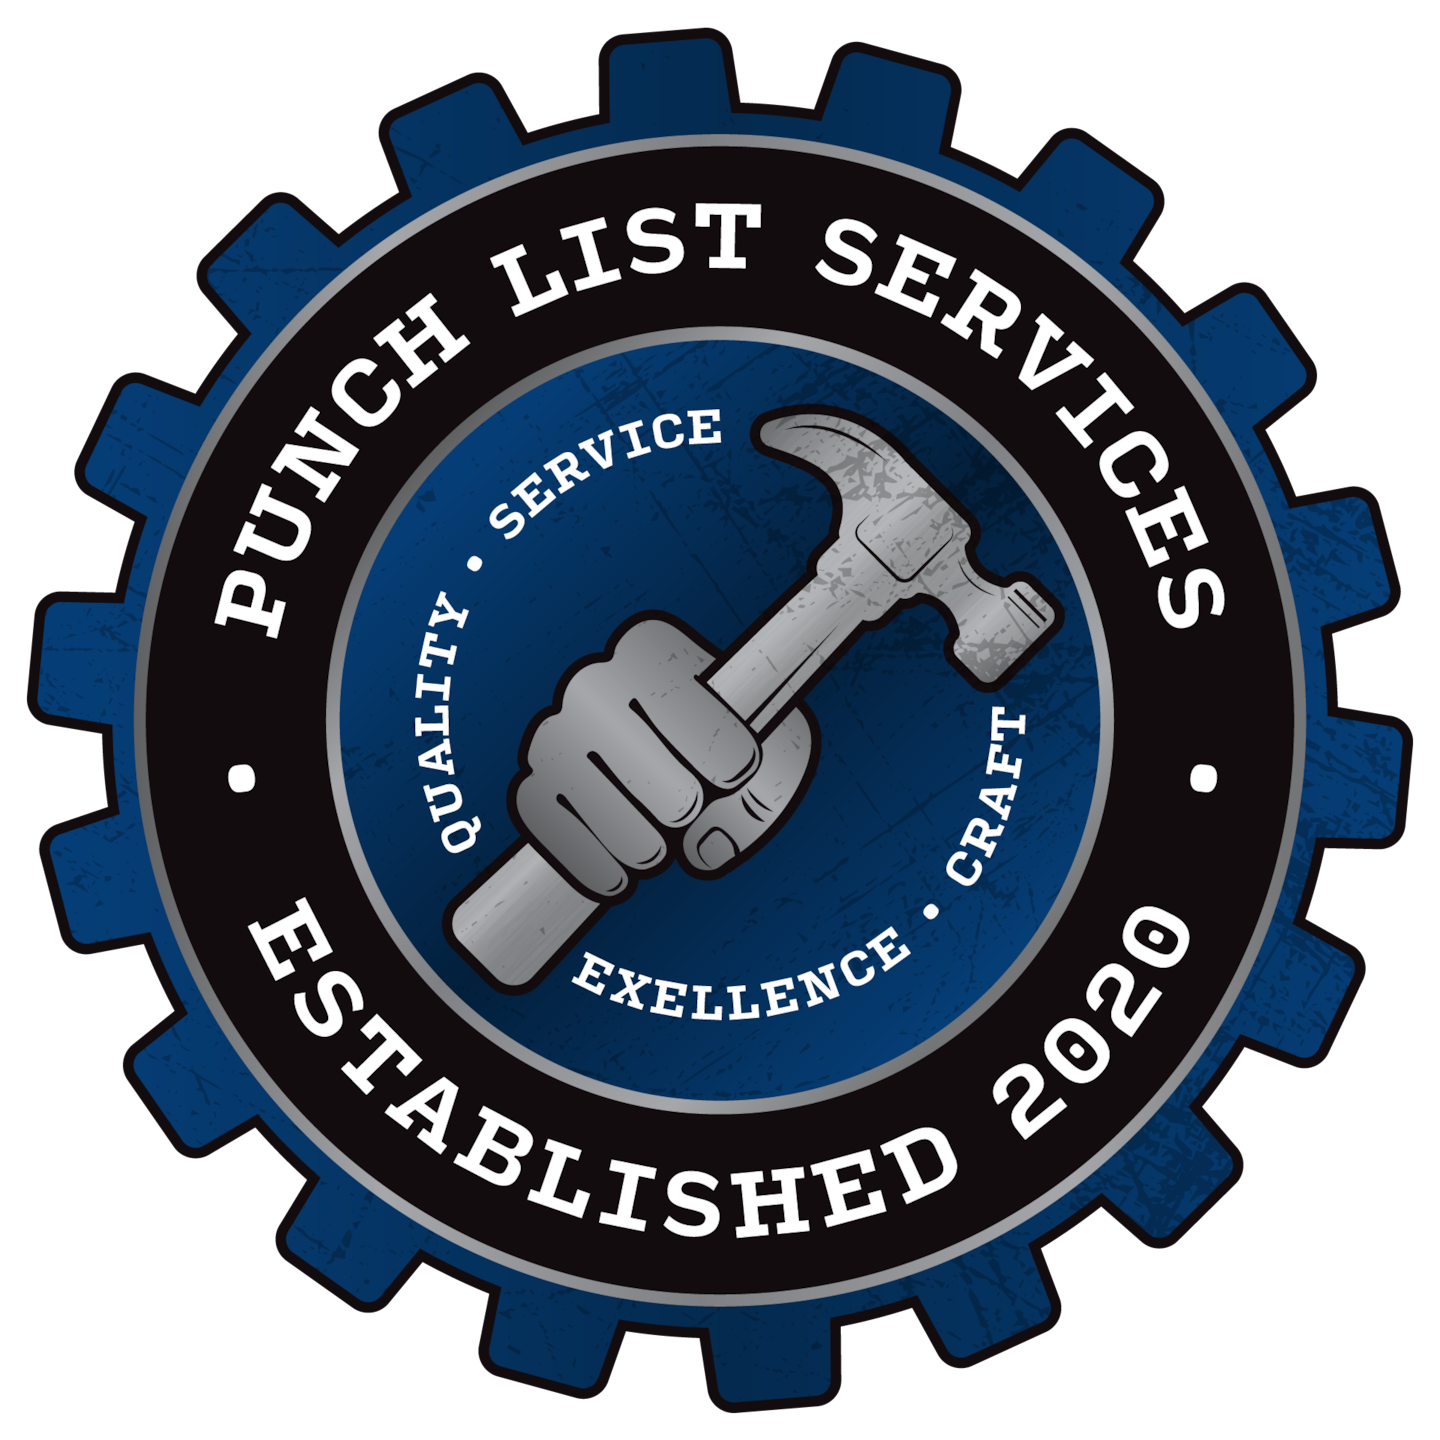 Punch List Services